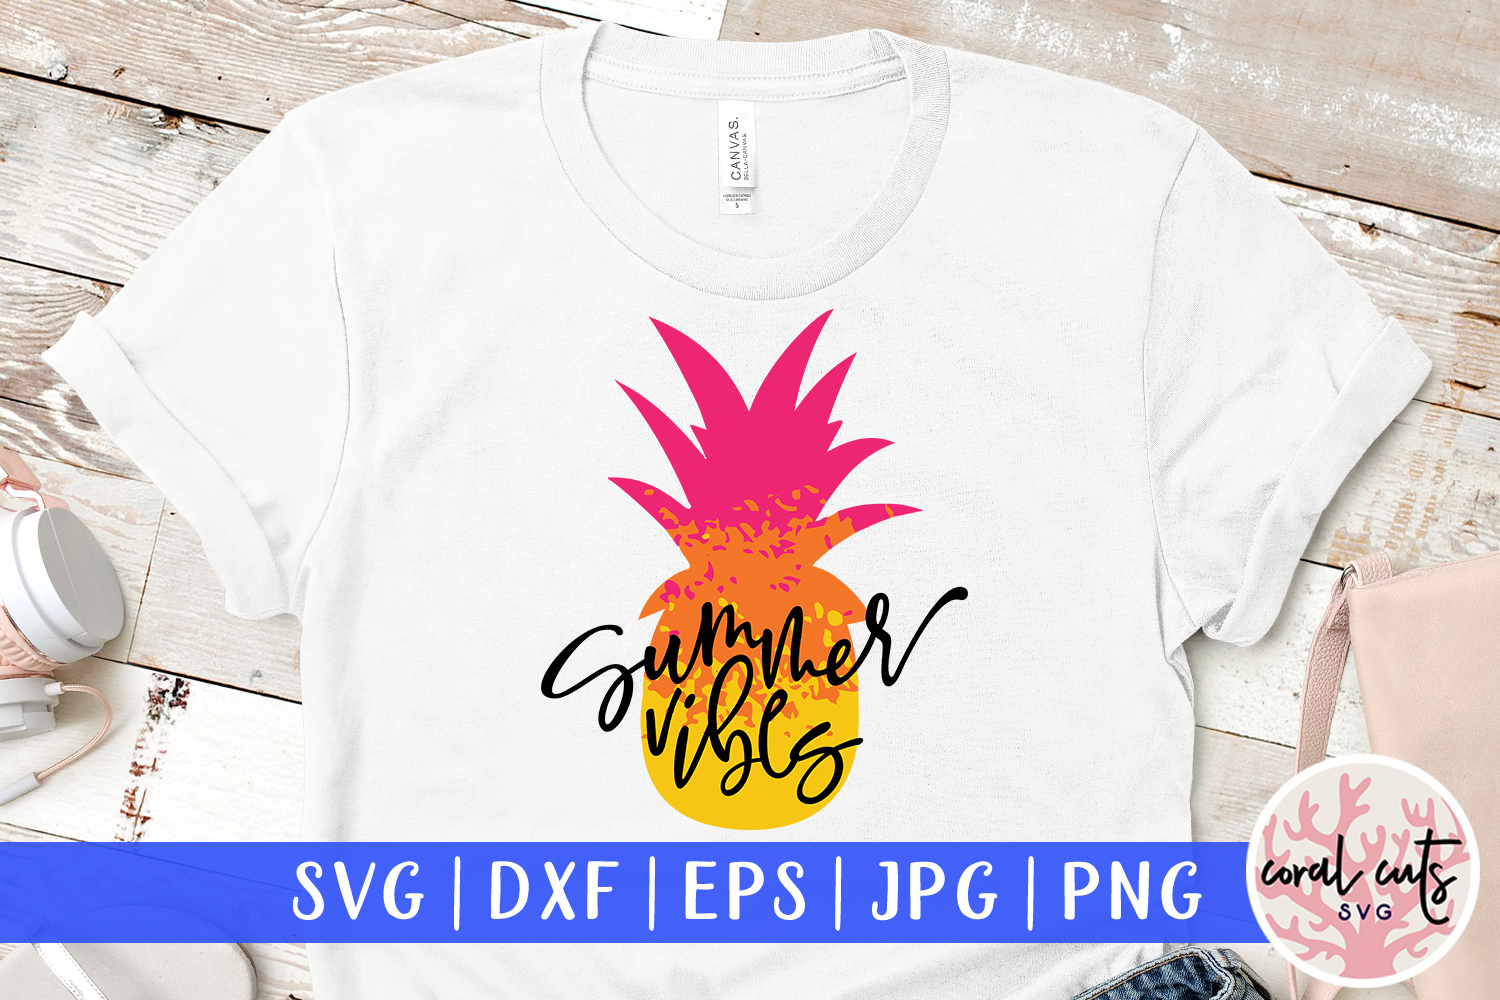 Download Free Summer Vibes Cut File Graphic By Coralcutssvg Creative Fabrica for Cricut Explore, Silhouette and other cutting machines.